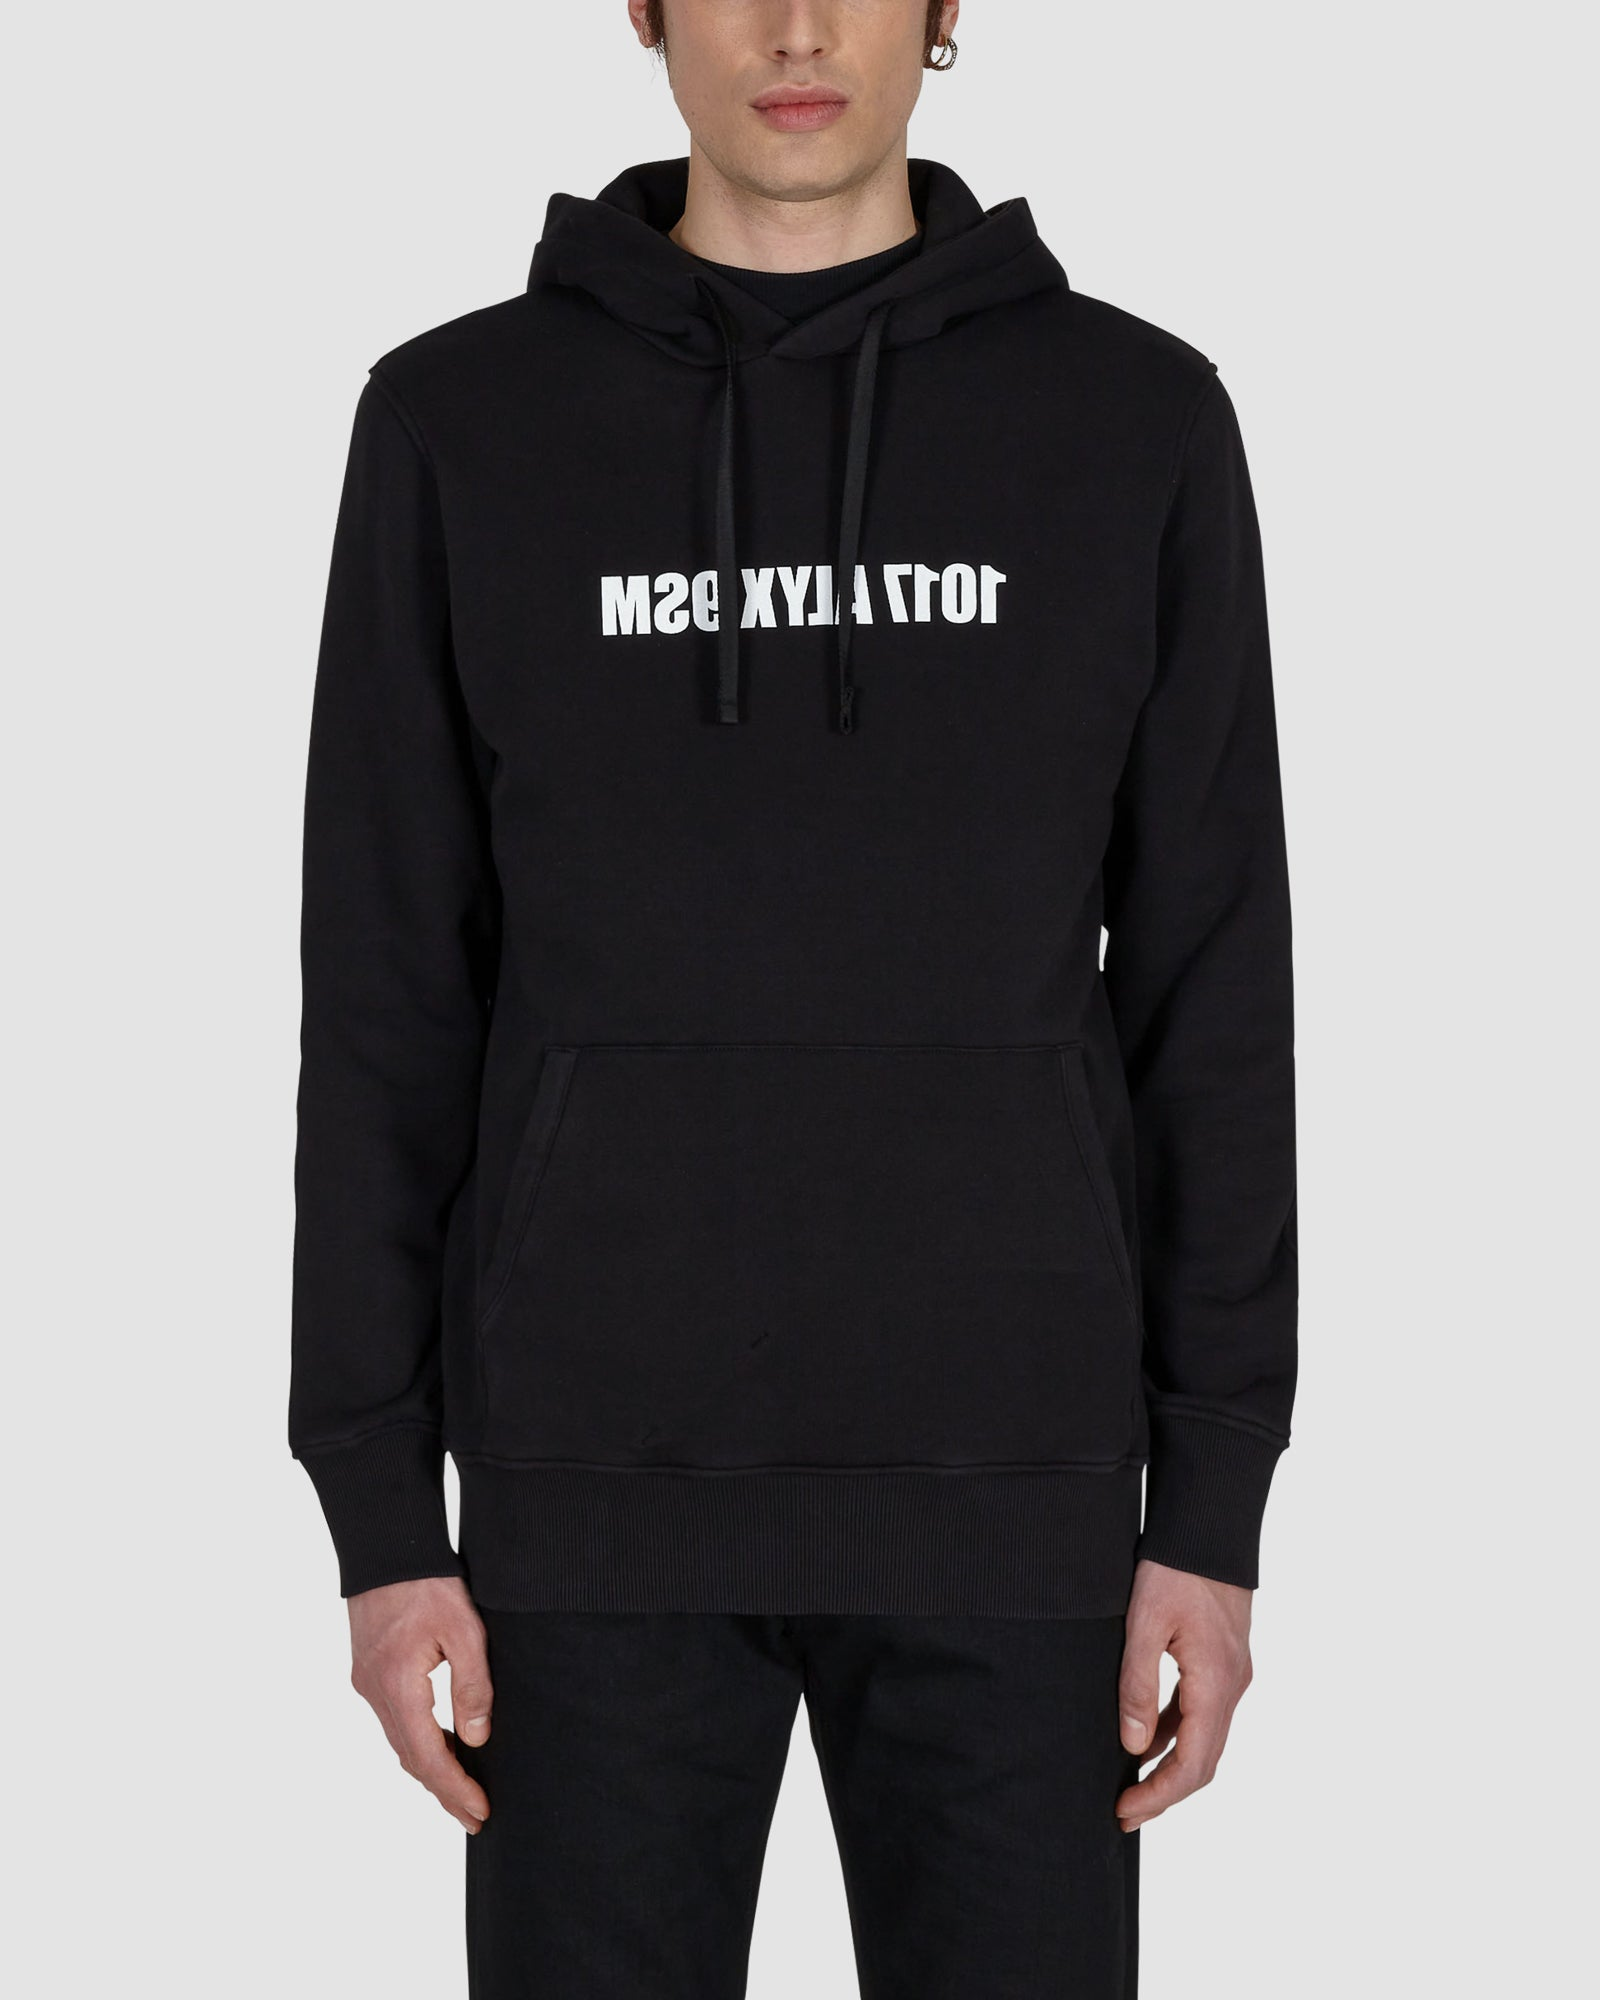 HOODIE WITH MIRROR LOGO GRAPHIC